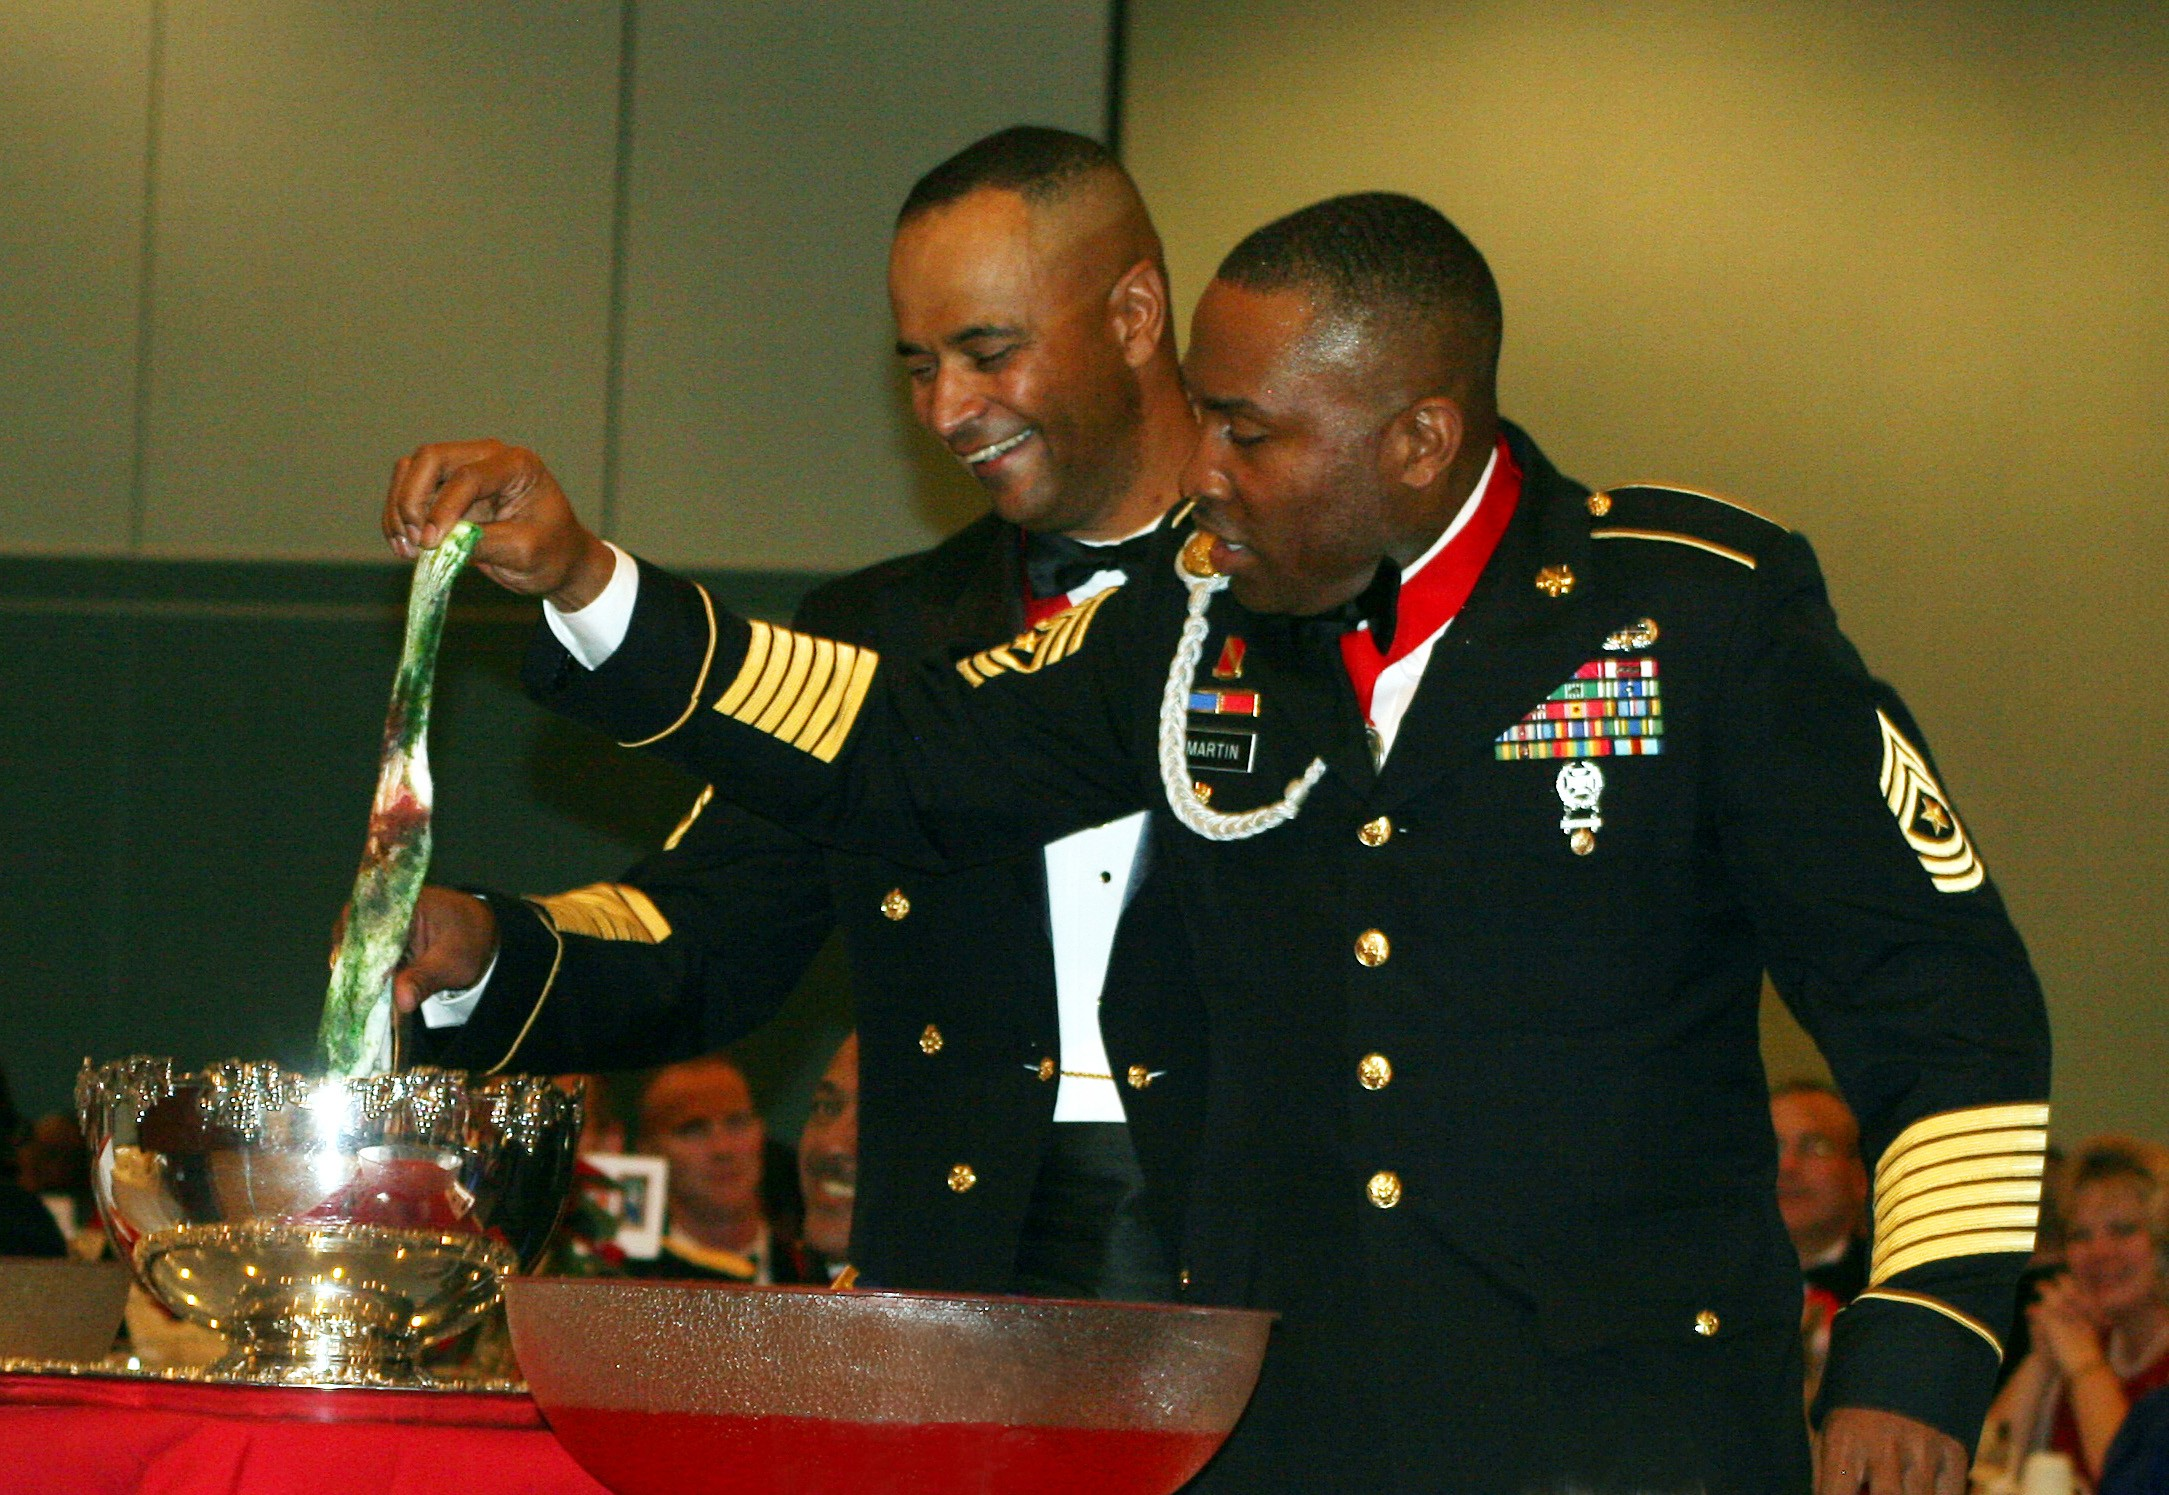 ... honors patron saint of artillery | Article | The United States Army